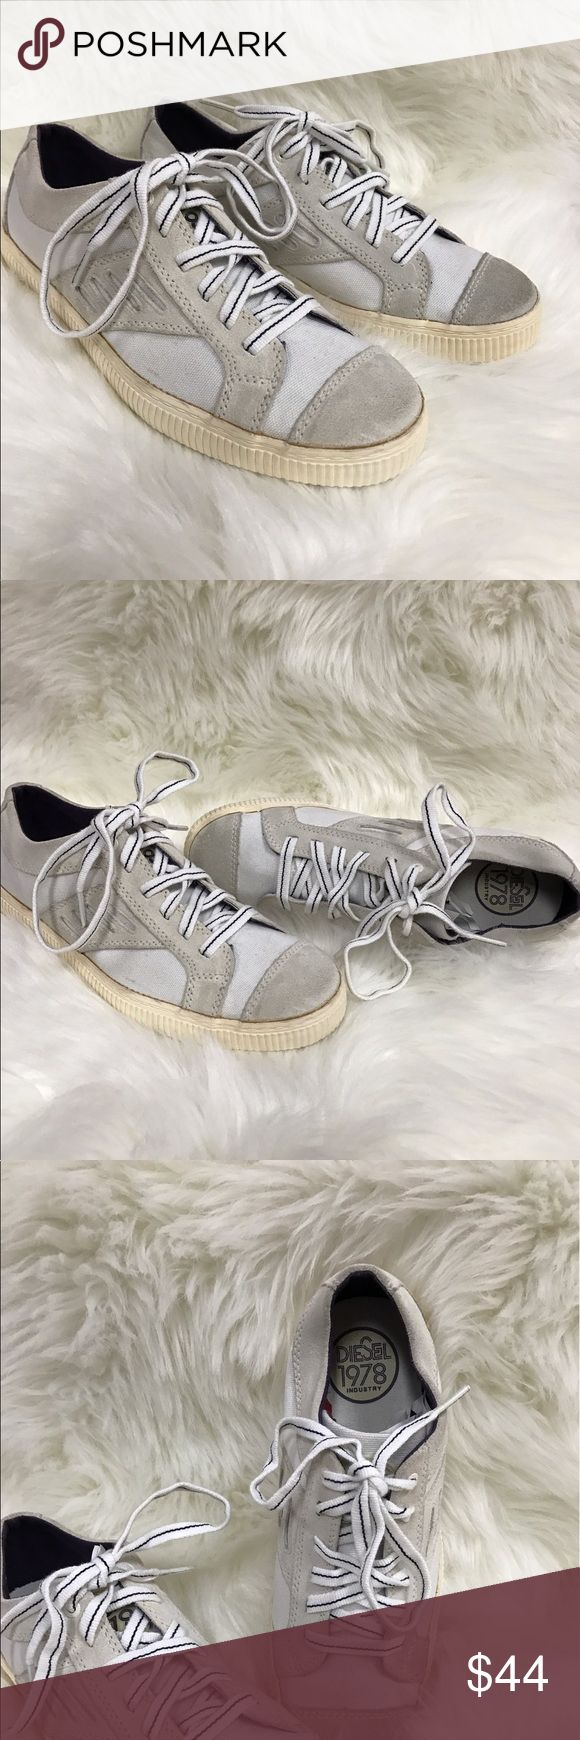 Diesel 1978 Icona Must W Sz 8 Canvas Suede Sneaker Diesel 1978 Icona Must W Men's size 8 canvas and suede lace up sneaker. This item is in good pre- owned condition. Diesel Shoes Sneakers